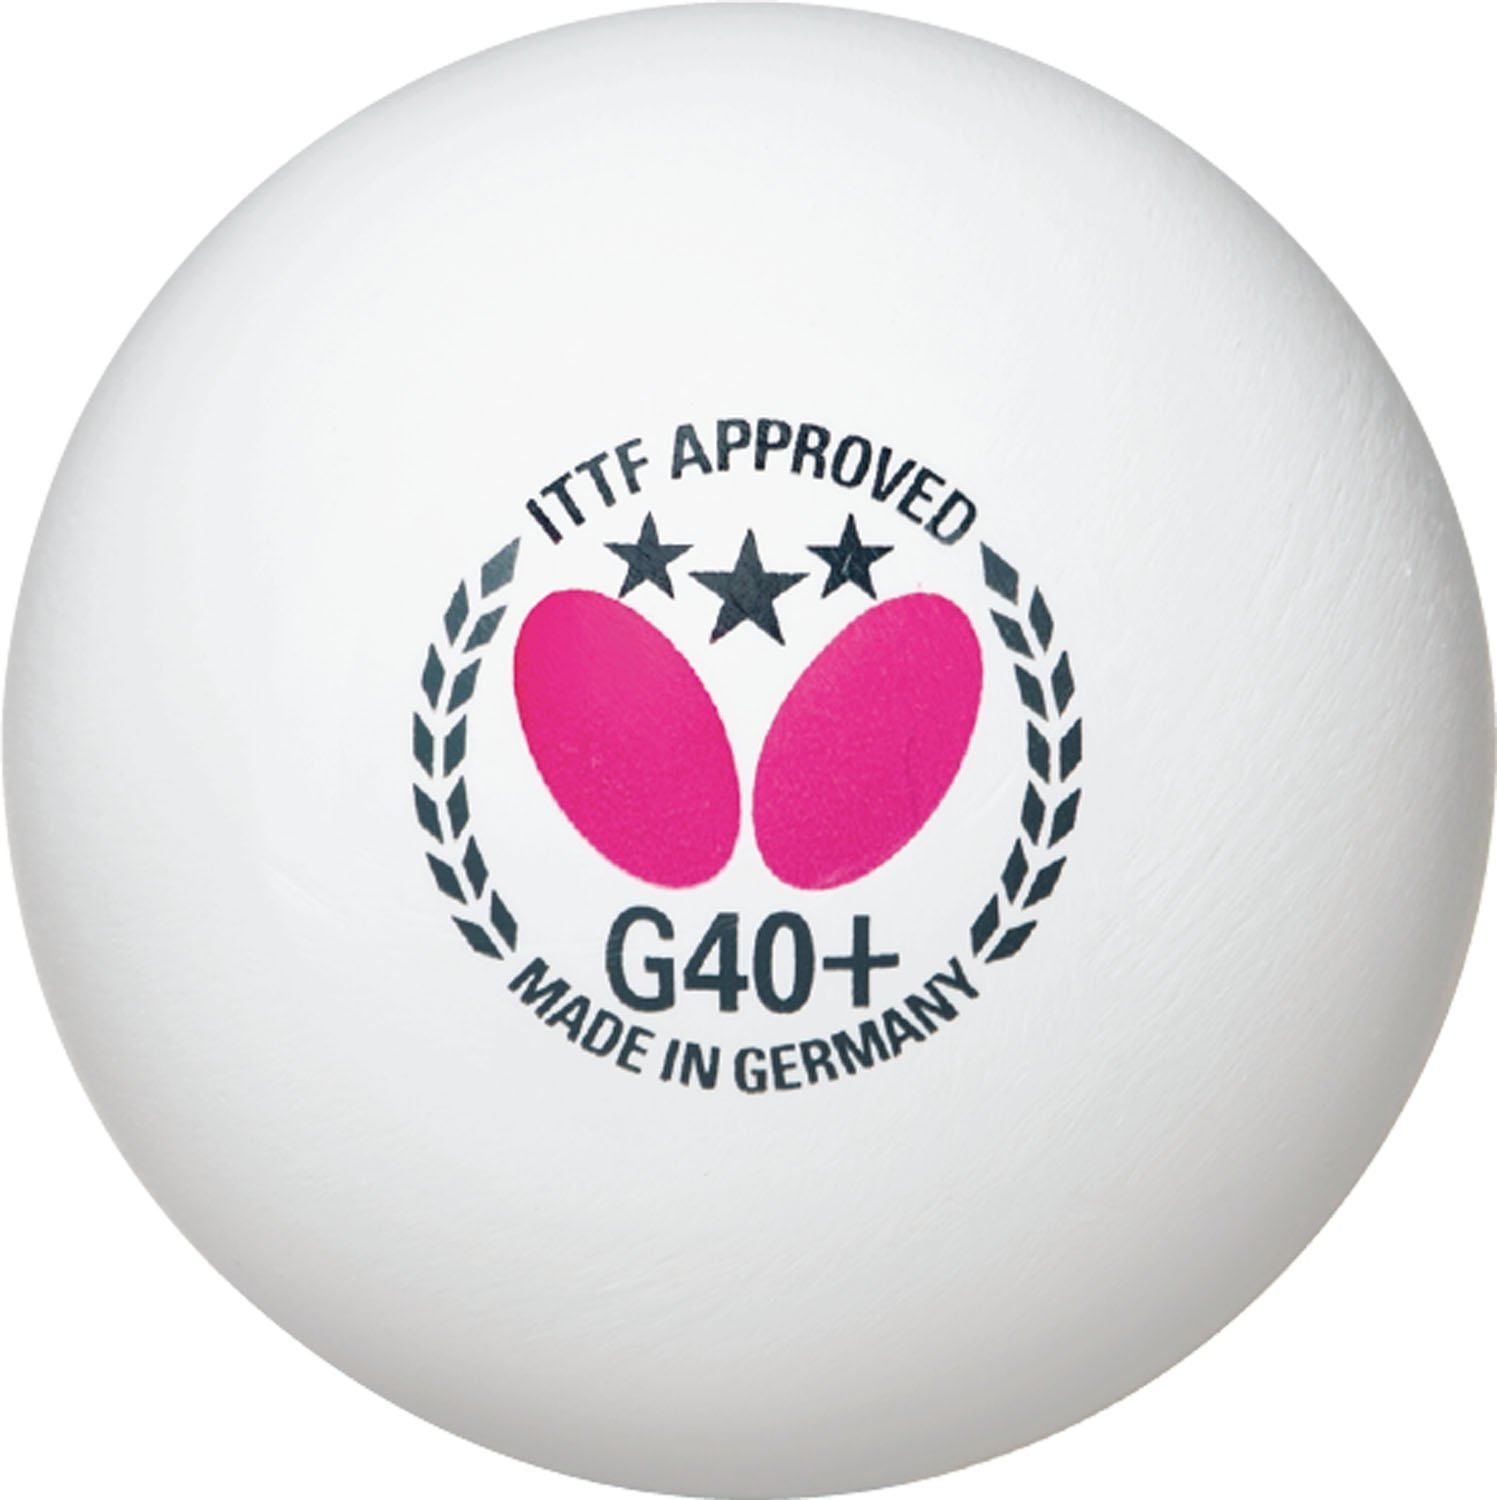 Butterfly G40+ 3 Star Table Tennis Balls (6 Pack) - White - ITTF Approved